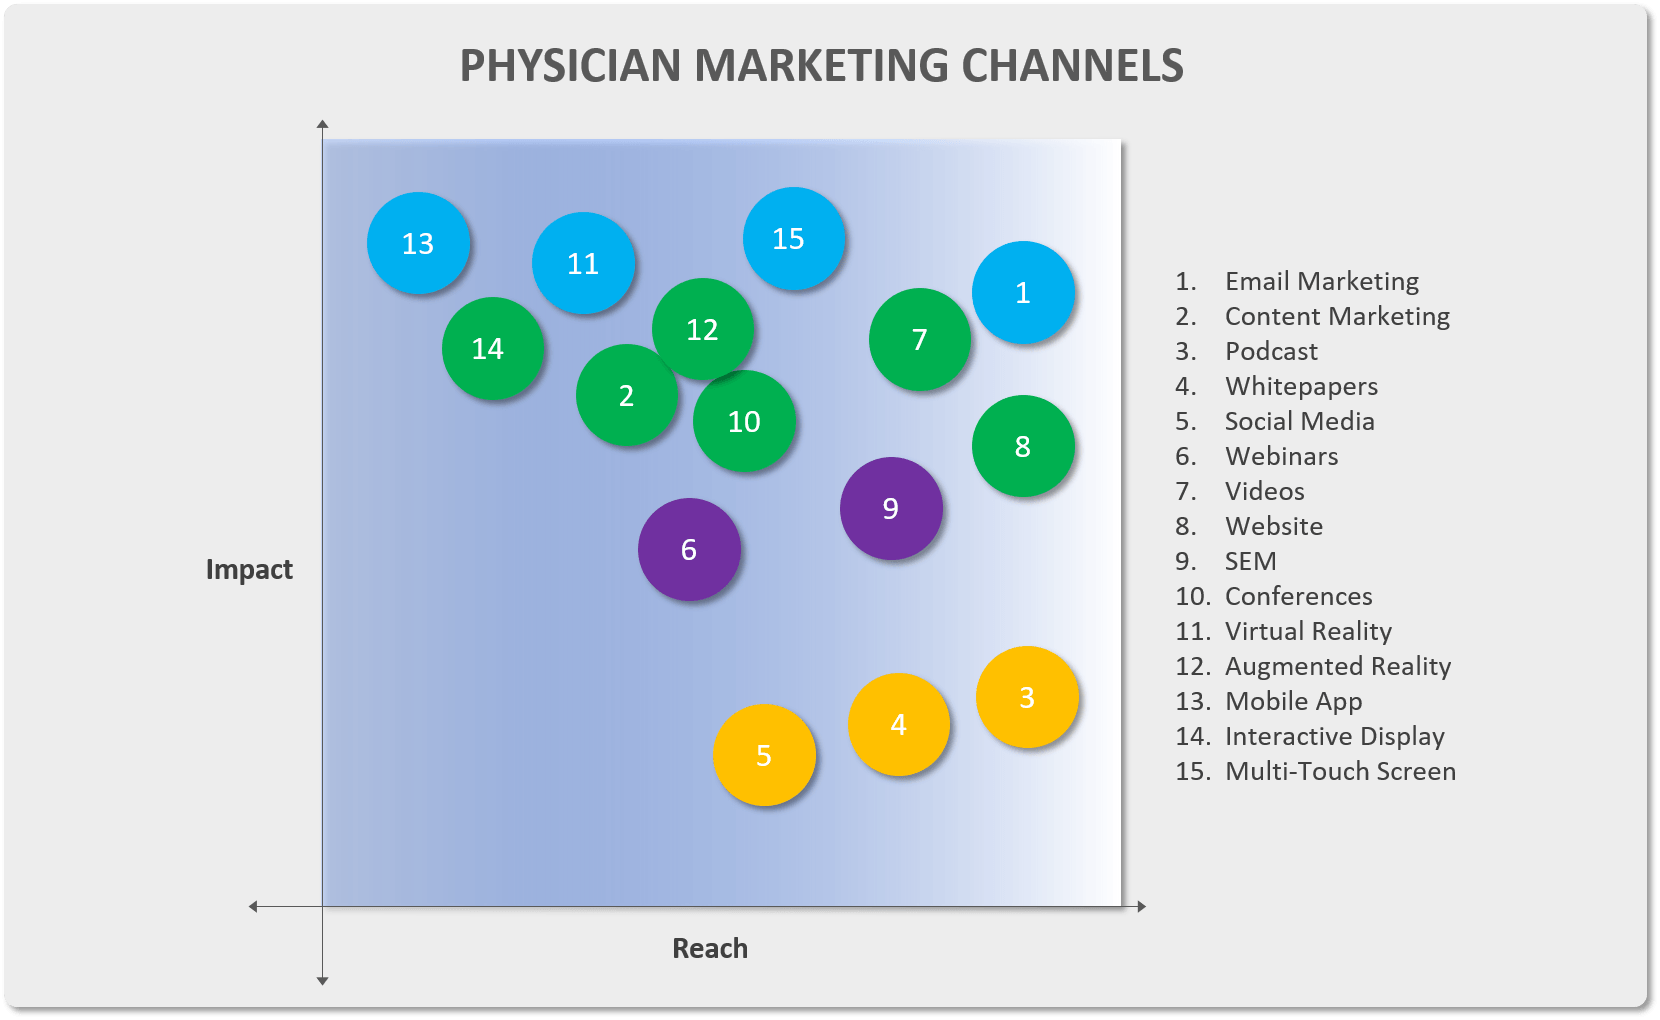 physician marketing channels